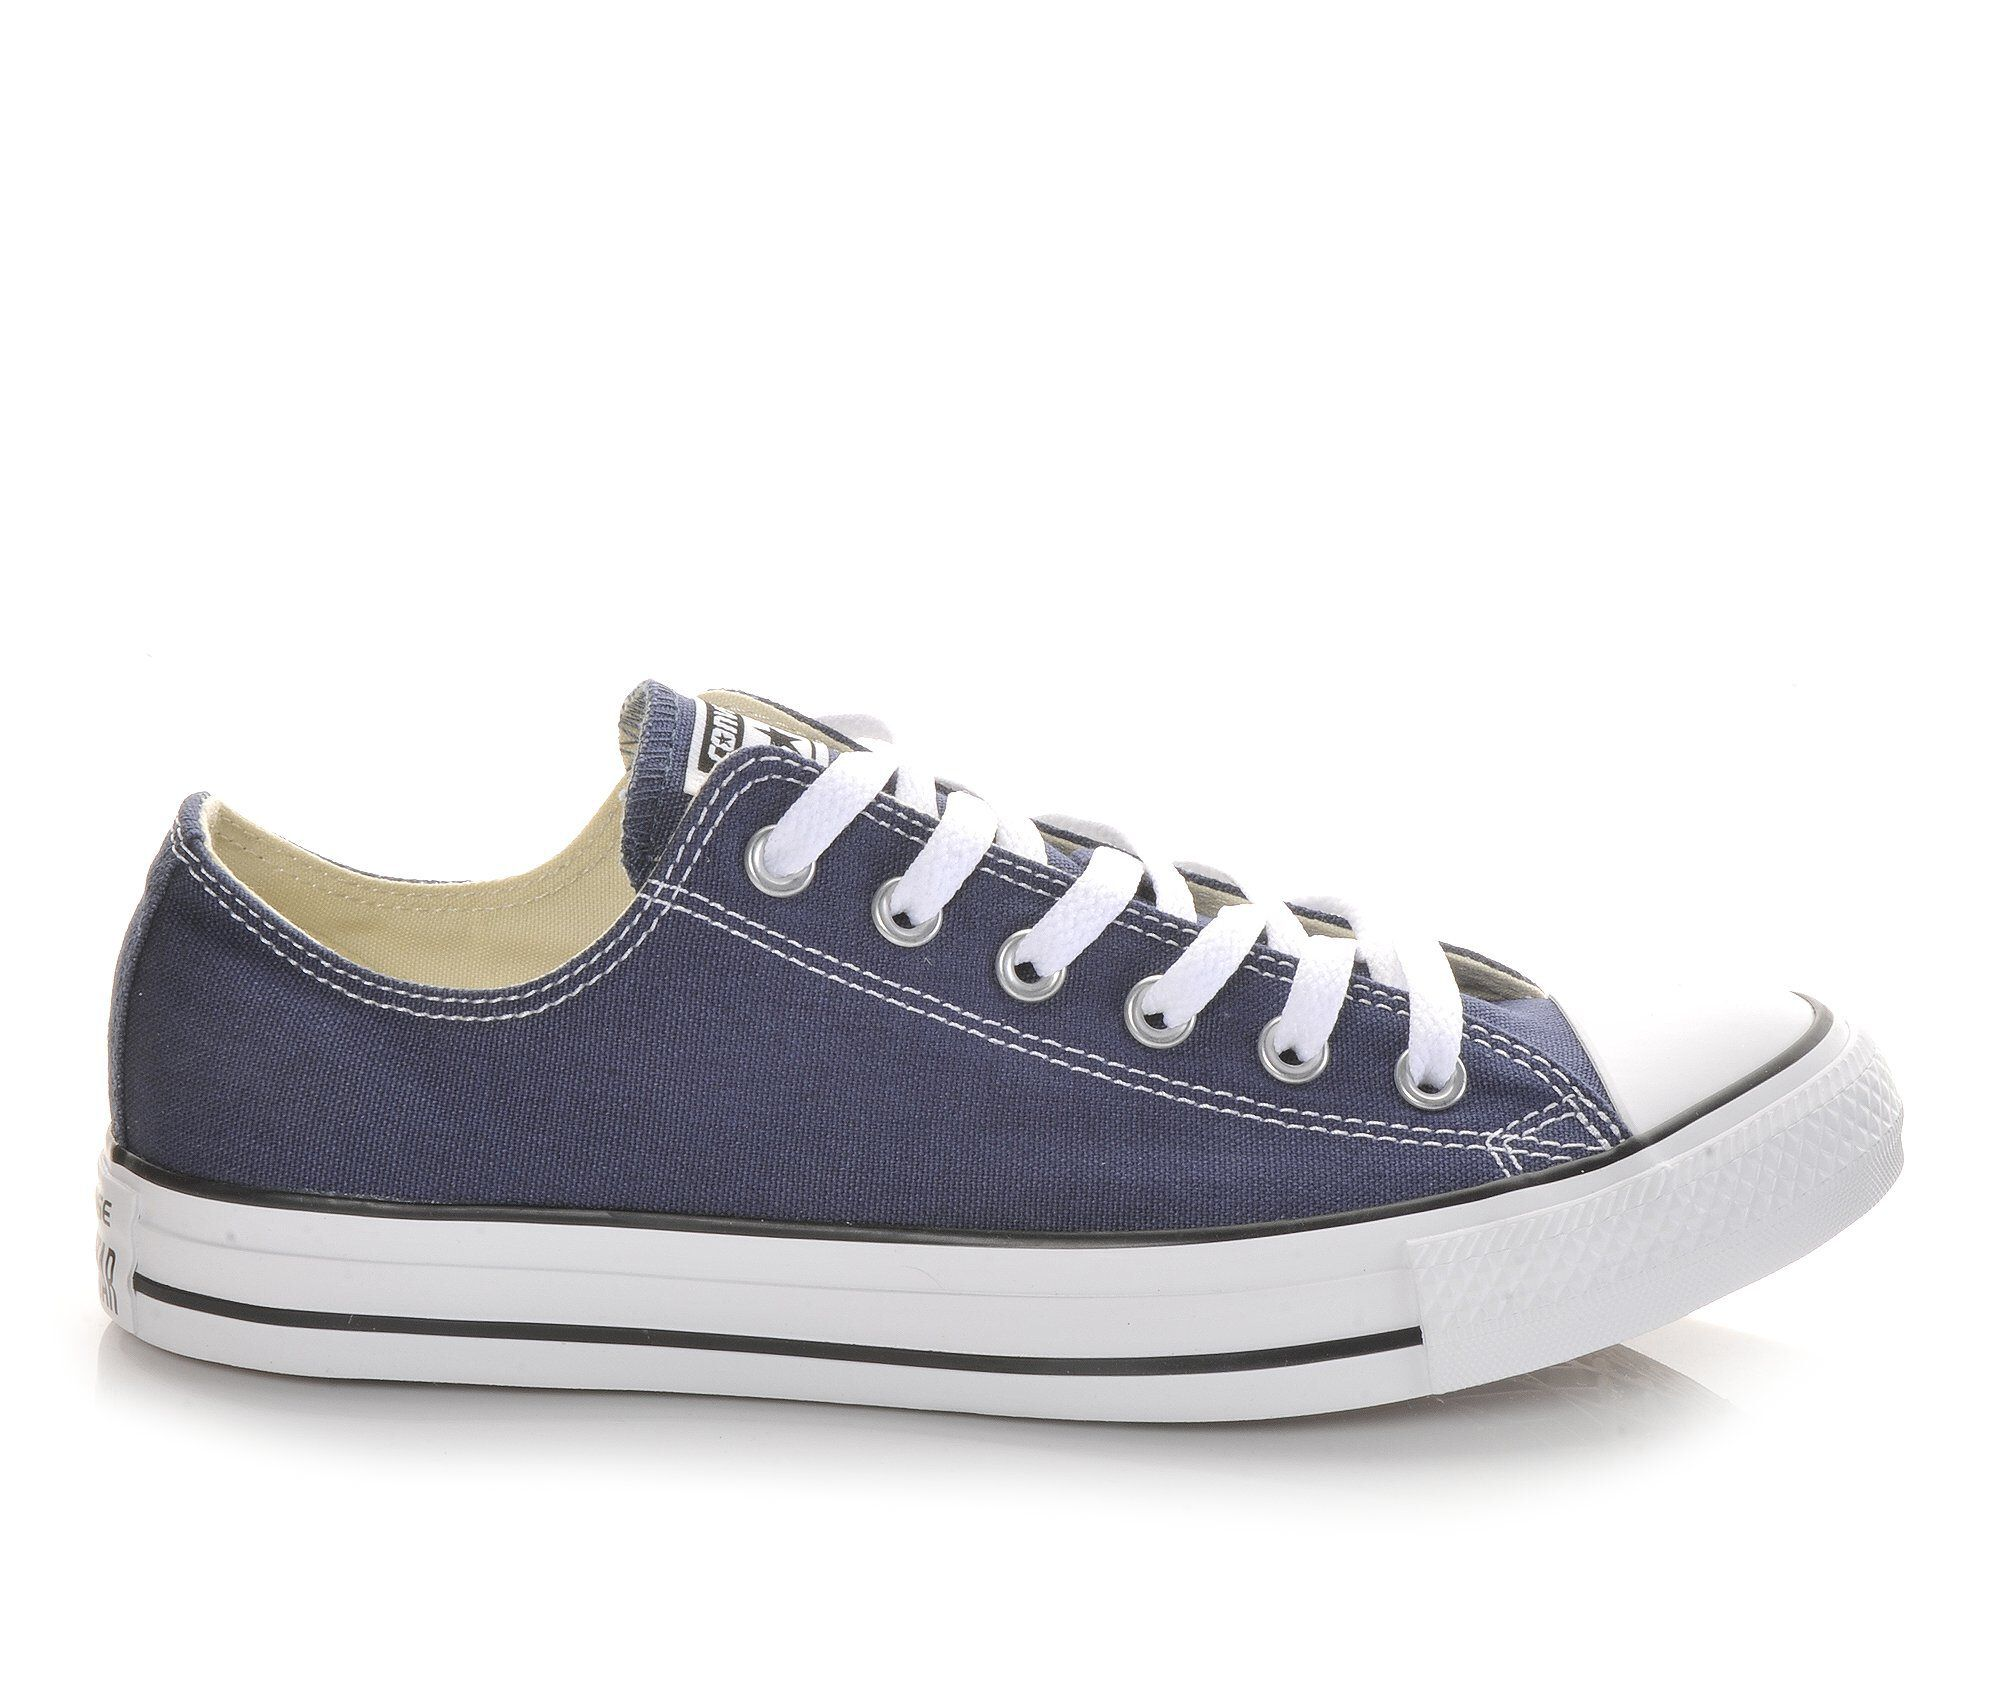 Almacenista Geniue Descuento Mejor Venta Converse chuck taylor all star classic colors ox (Red) TIPW7Ir